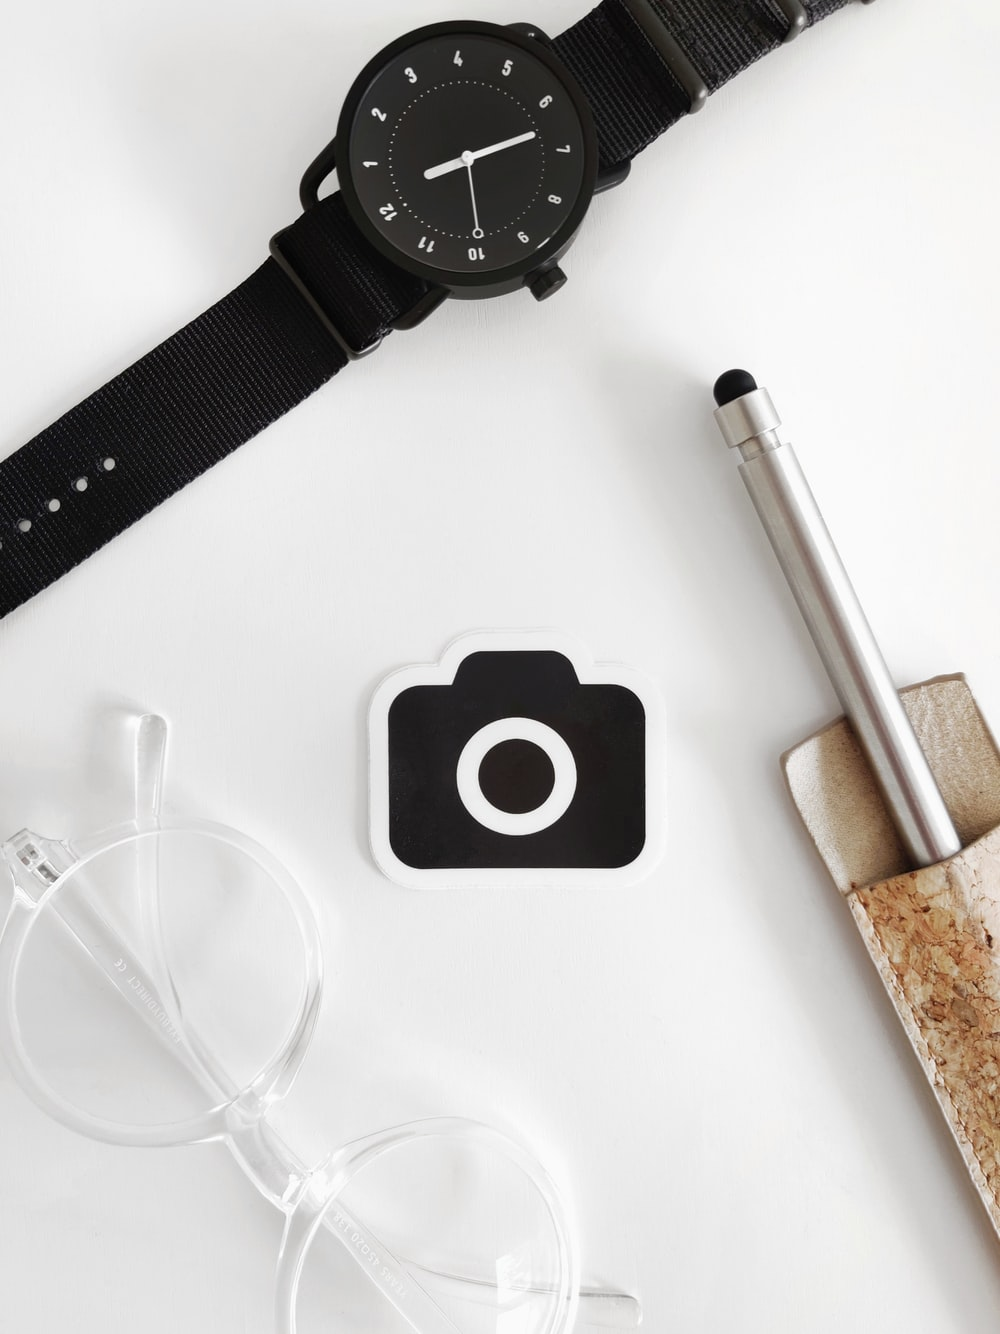 black round analog watch beside silver pen and white pen